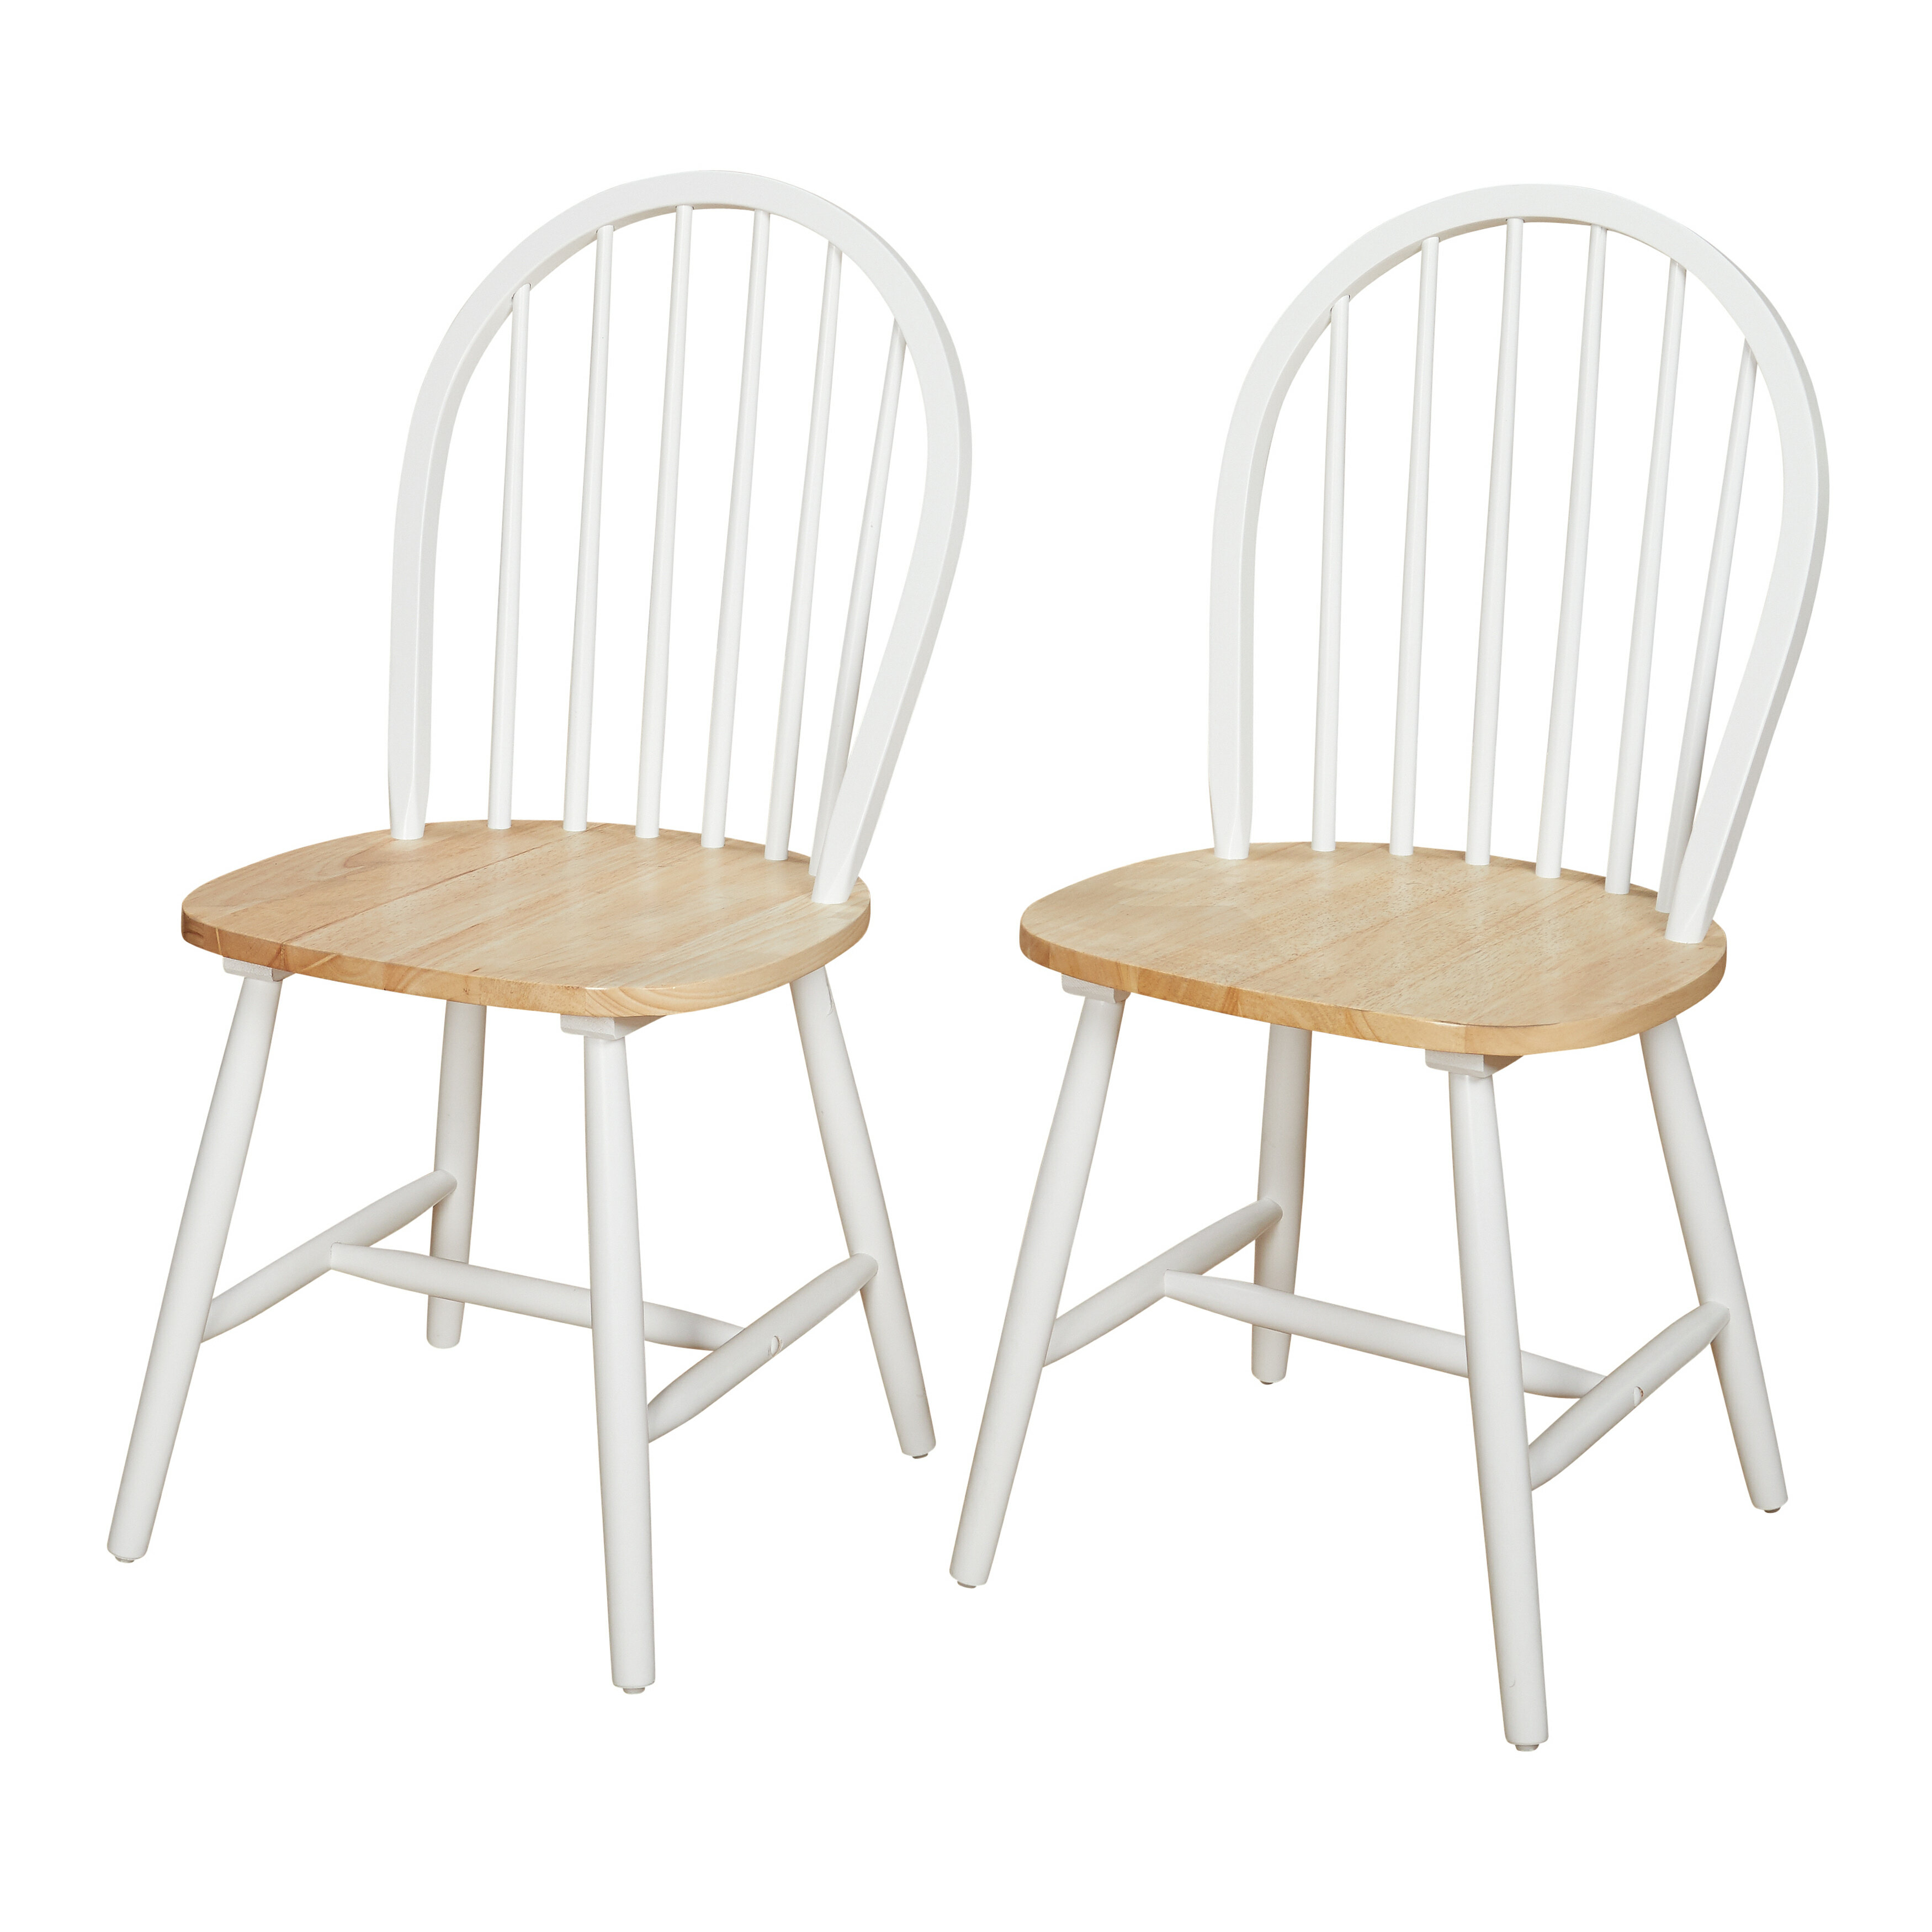 TMS Classic Solid Wood Dining Chair U0026 Reviews | Wayfair